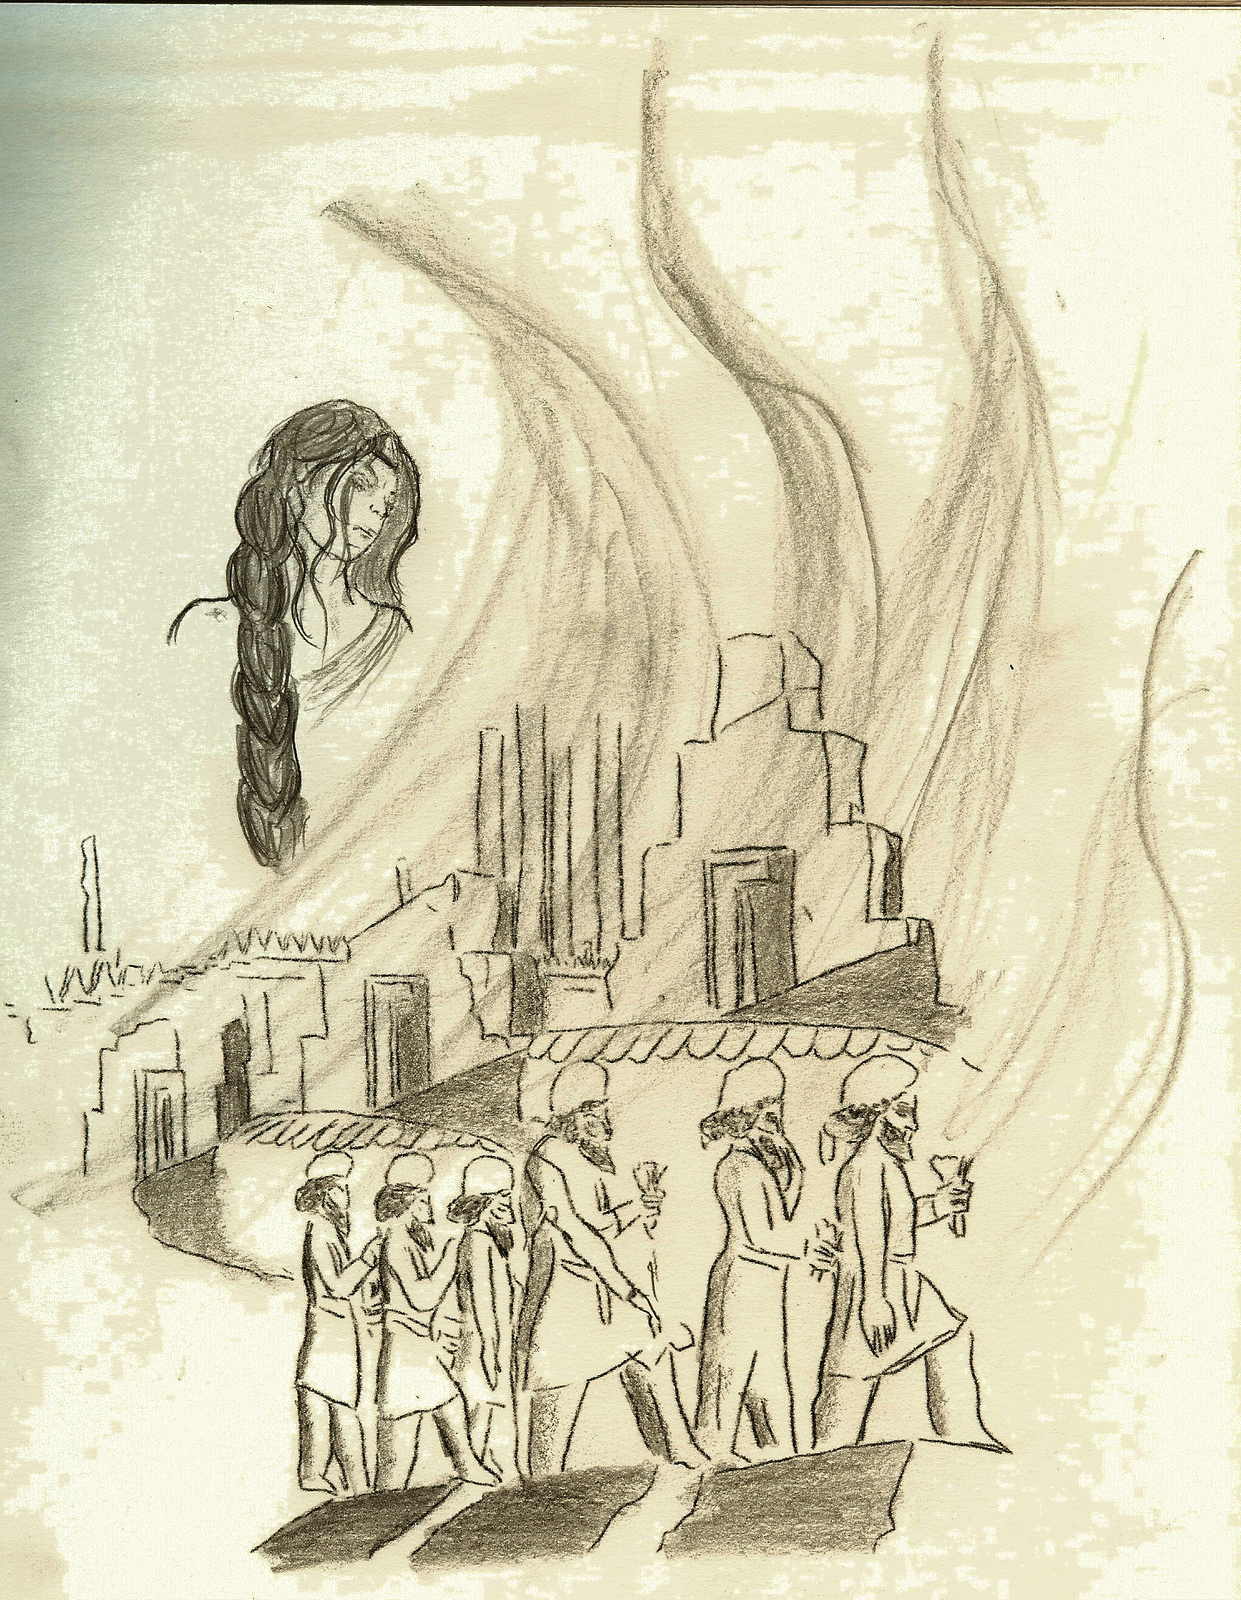 Athens drawing historical. A mind lively and